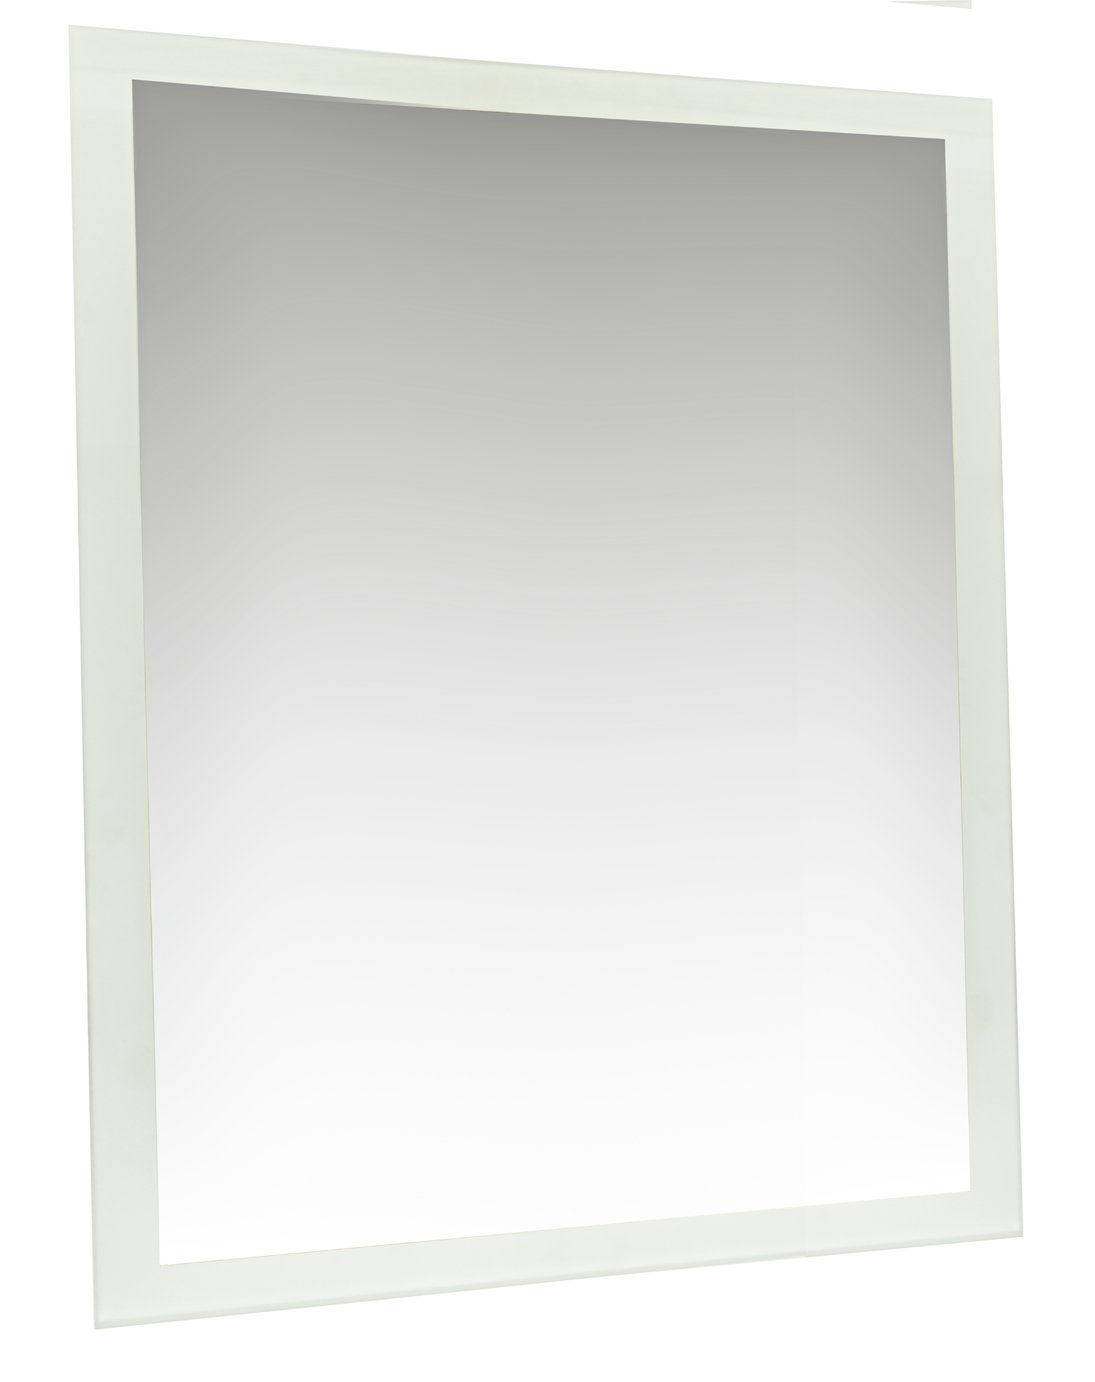 Argos Home Sheba LED Bathroom Shaver Mirror